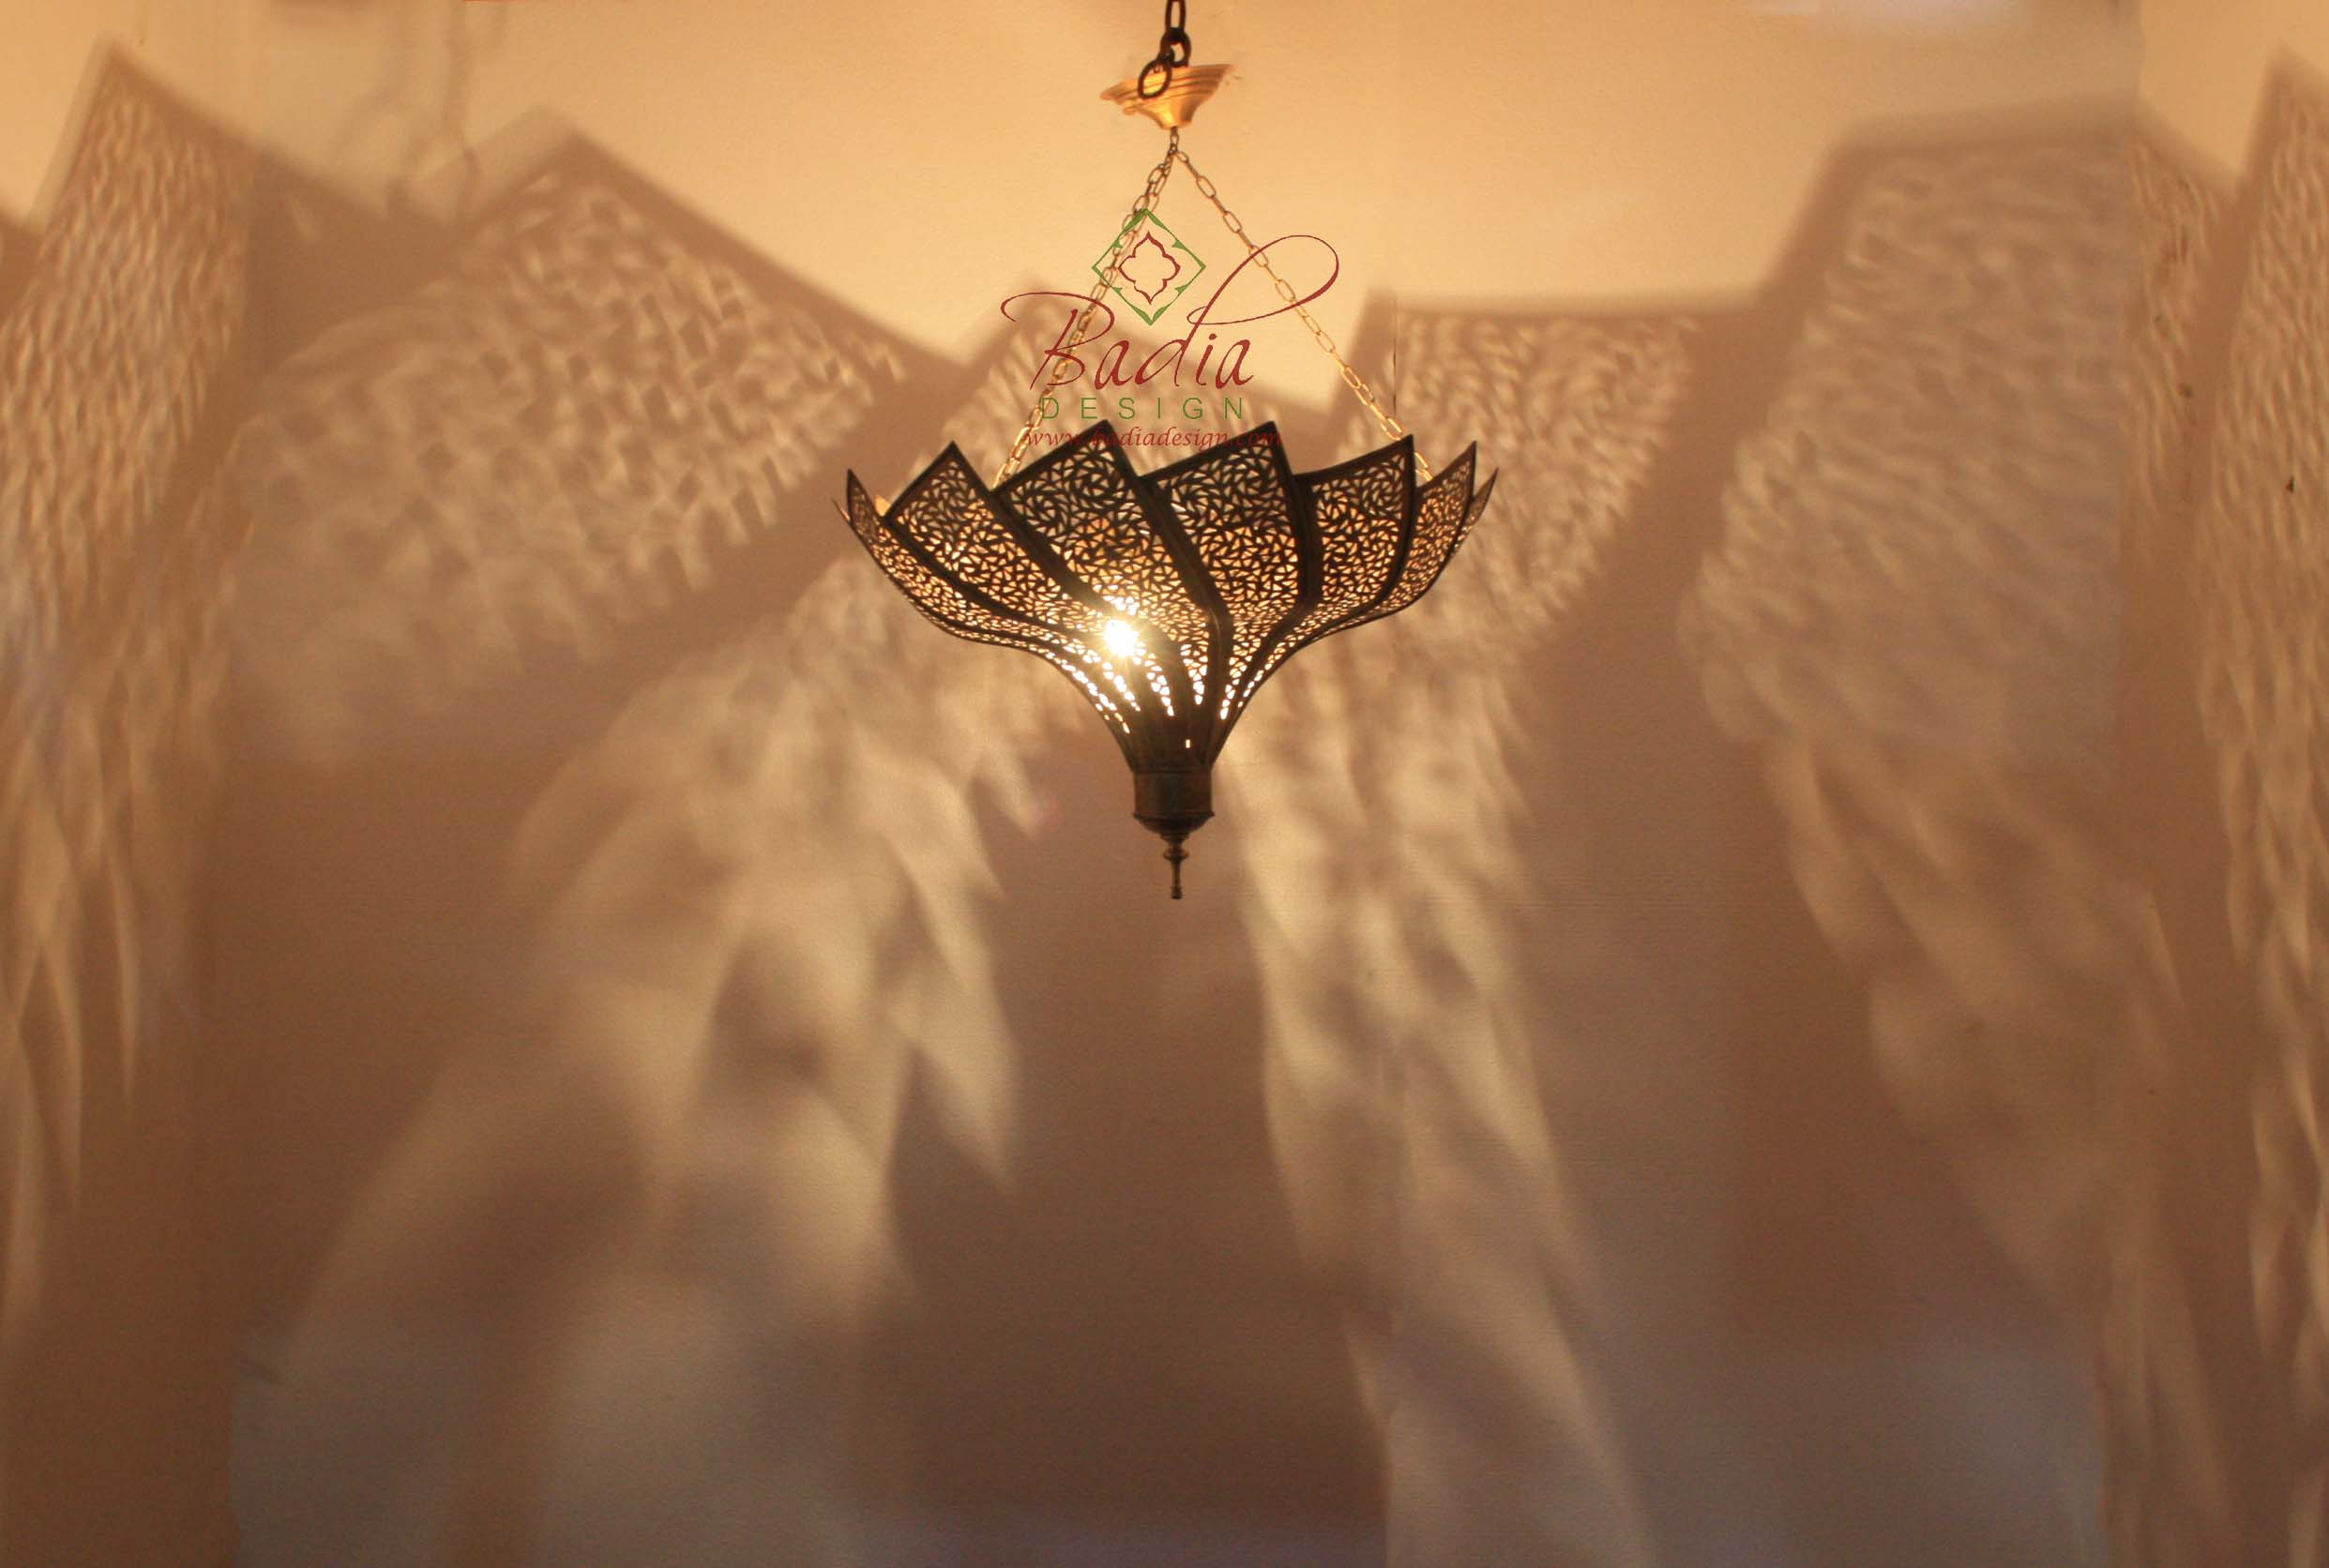 moroccan-brass-swirling-fan-shaped-chandelier-ch005-1.jpg